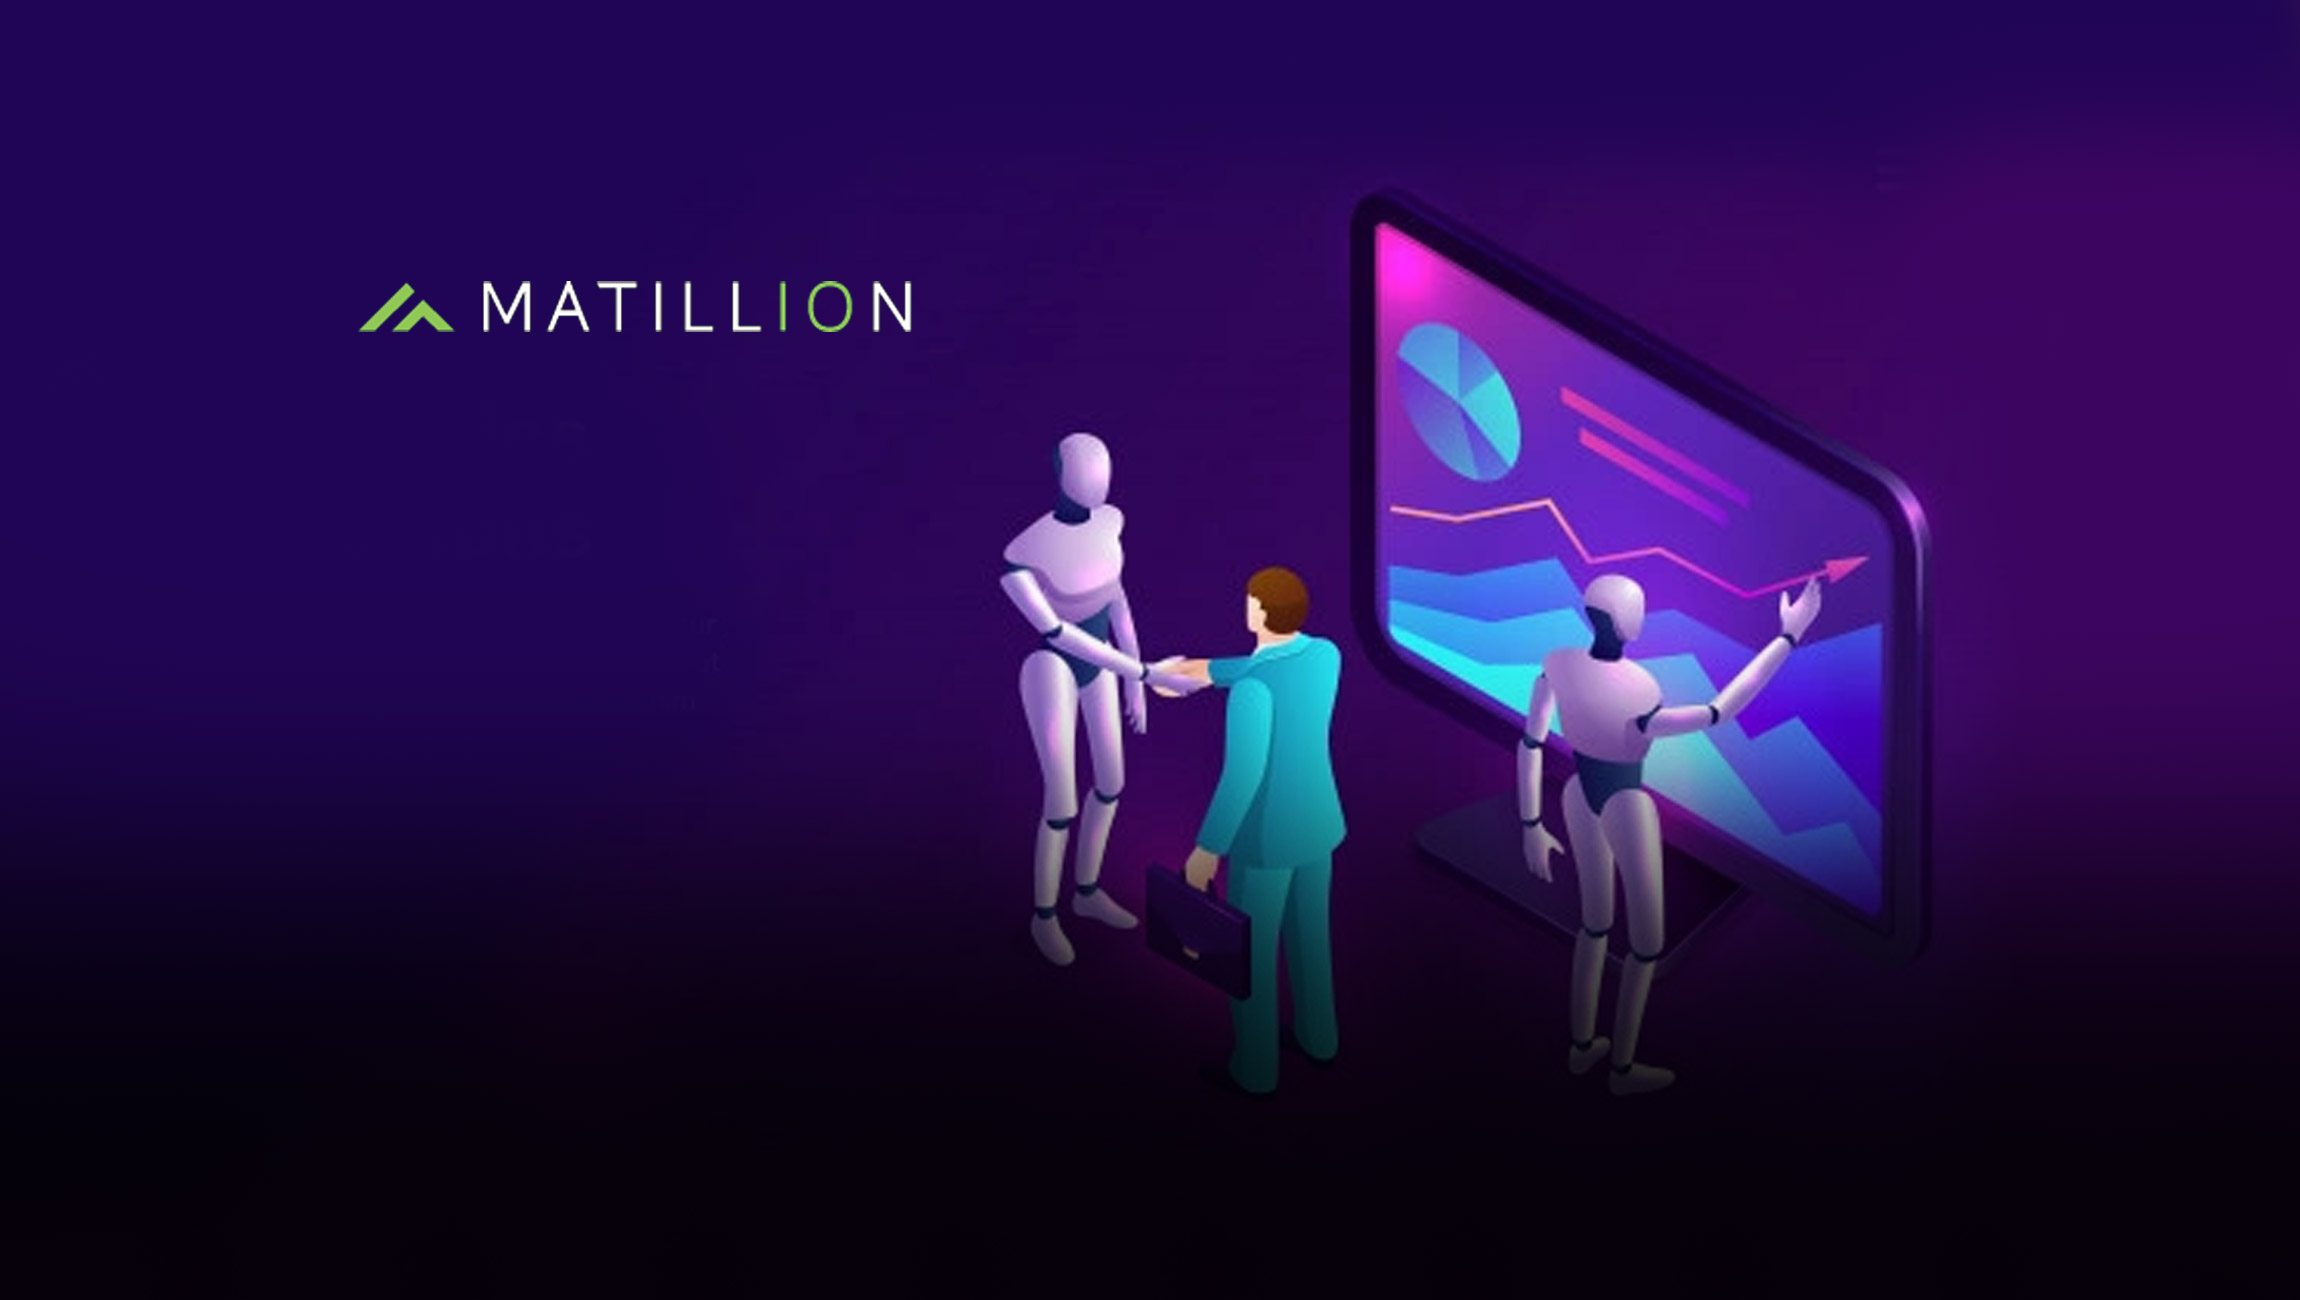 Matillion-Ranked-Number-43-Fastest-Growing-Technology-Company-in-the-UK-in-the-2020-Deloitte-Technology-Fast-50